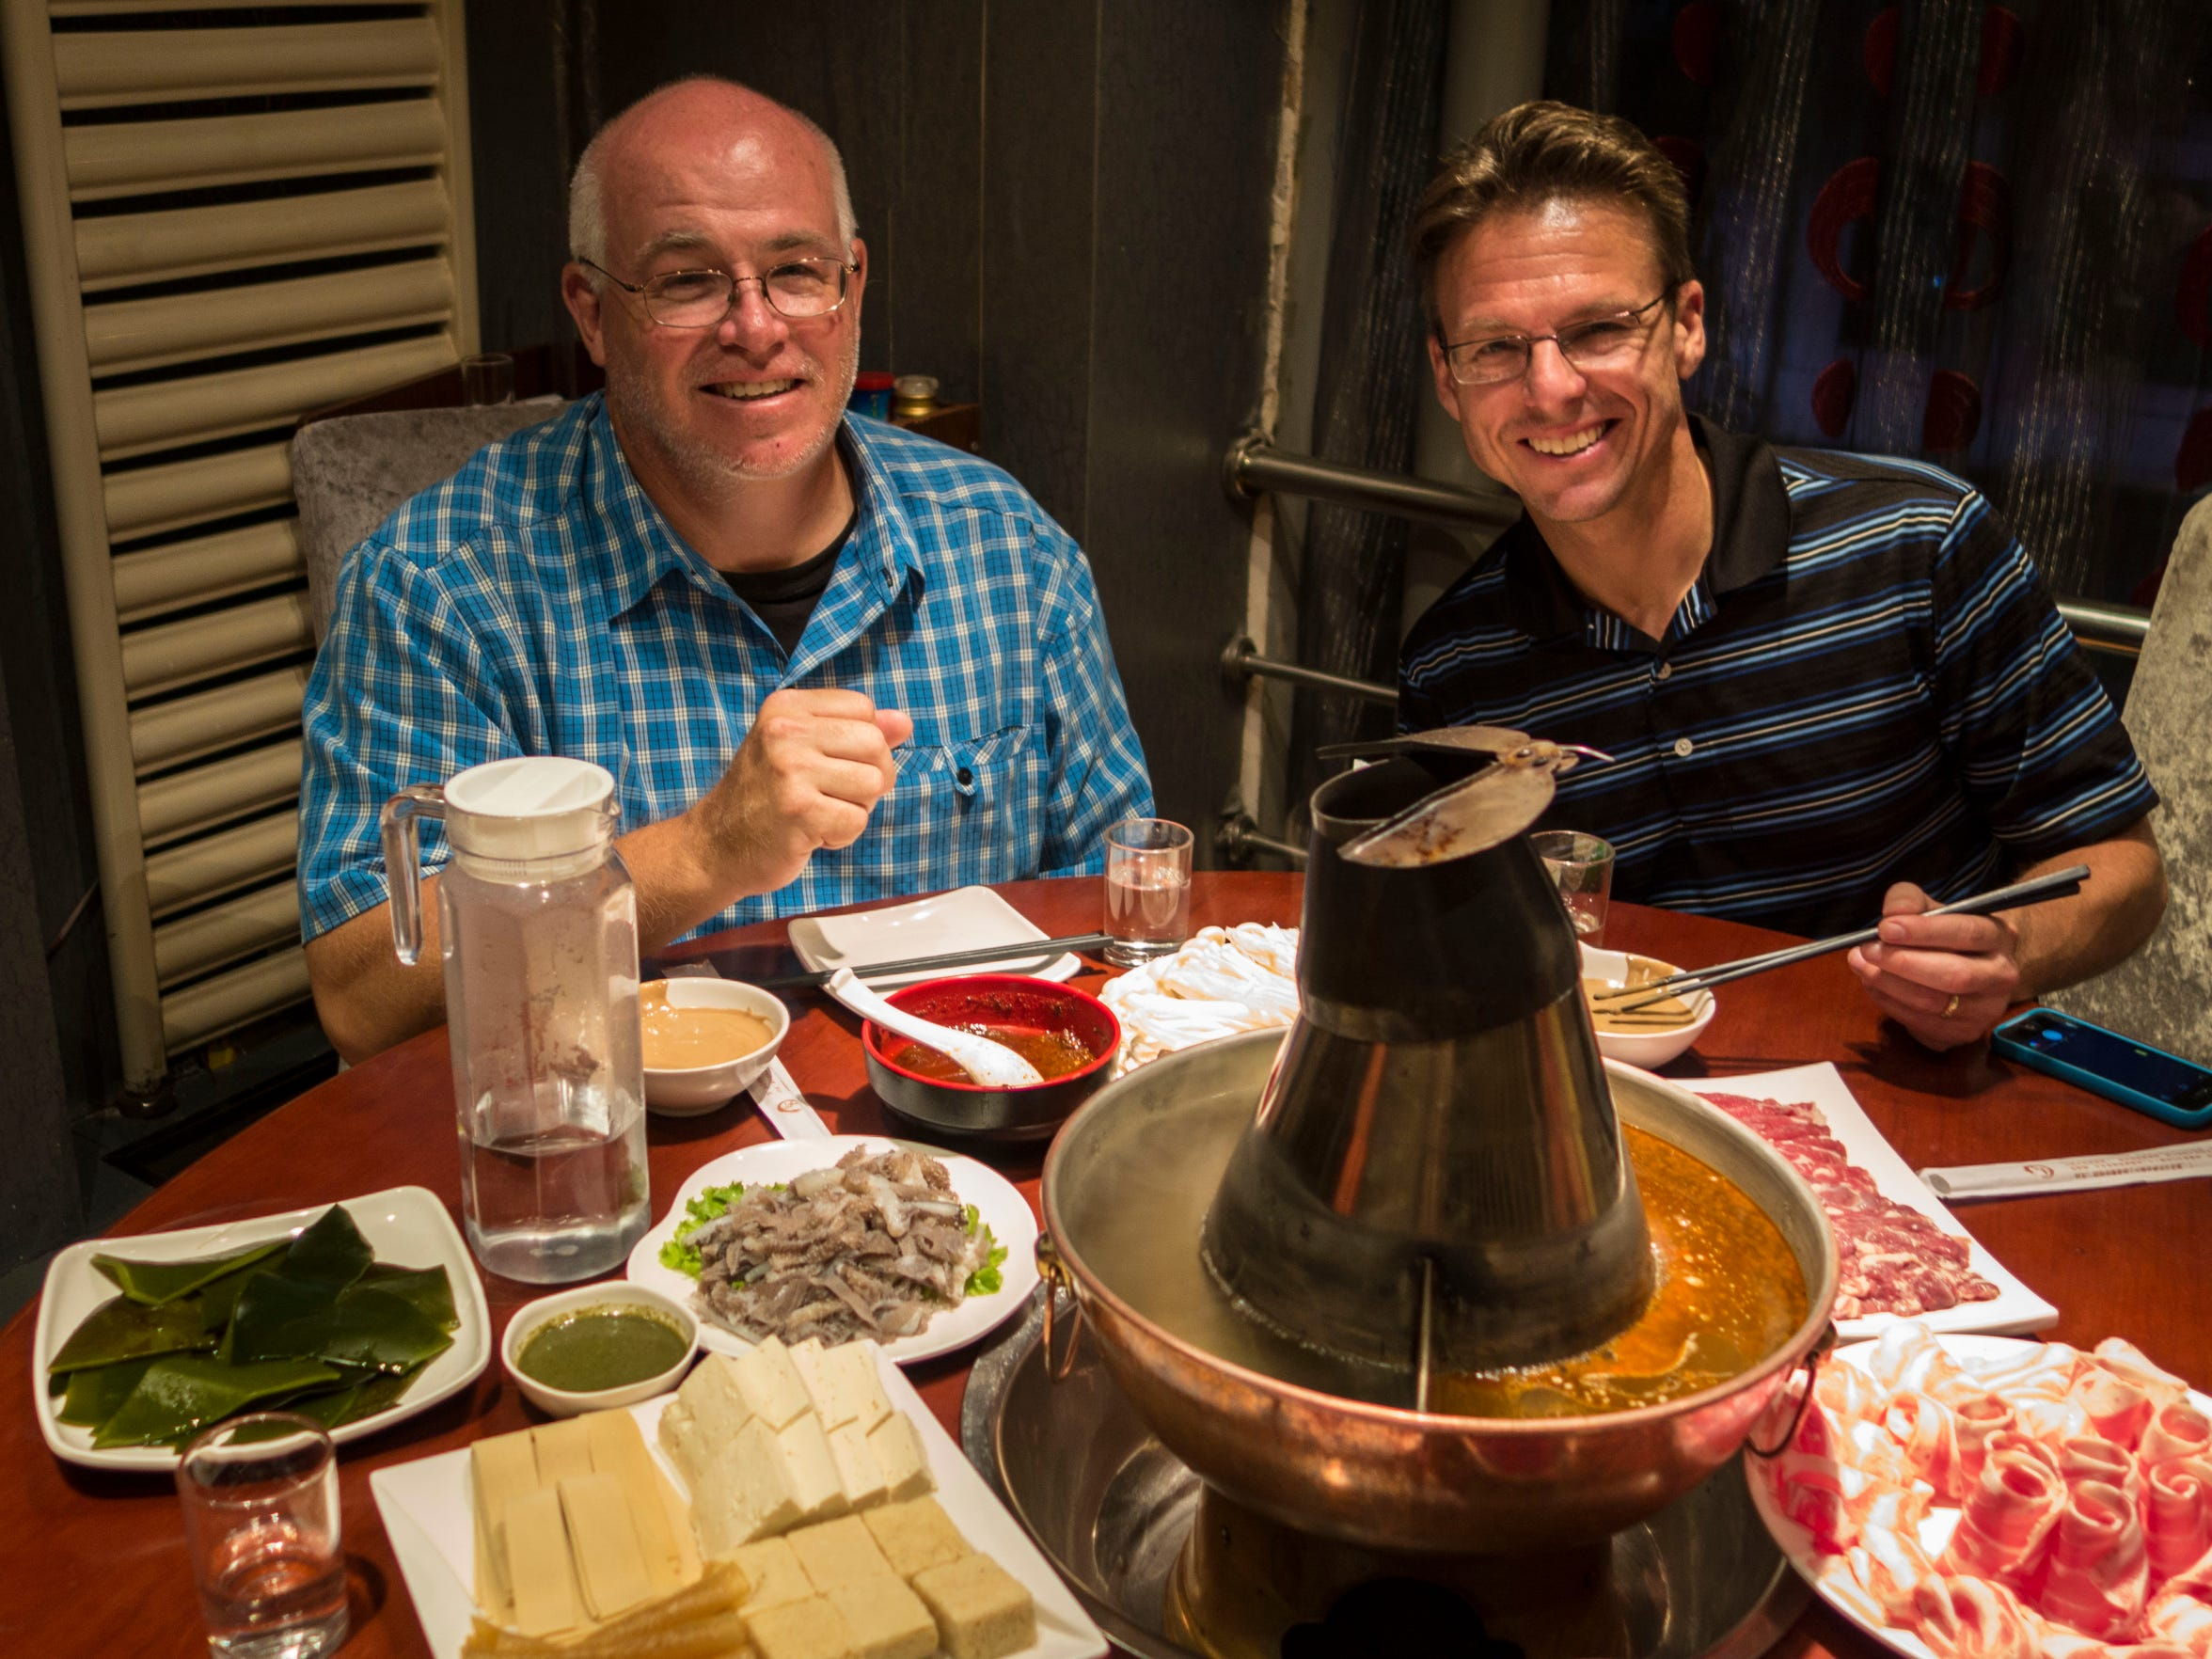 Rodney White (left) and Lynn Hicks enjoy a hot pot meal in Harbin, China, Sept. 4, 2014.